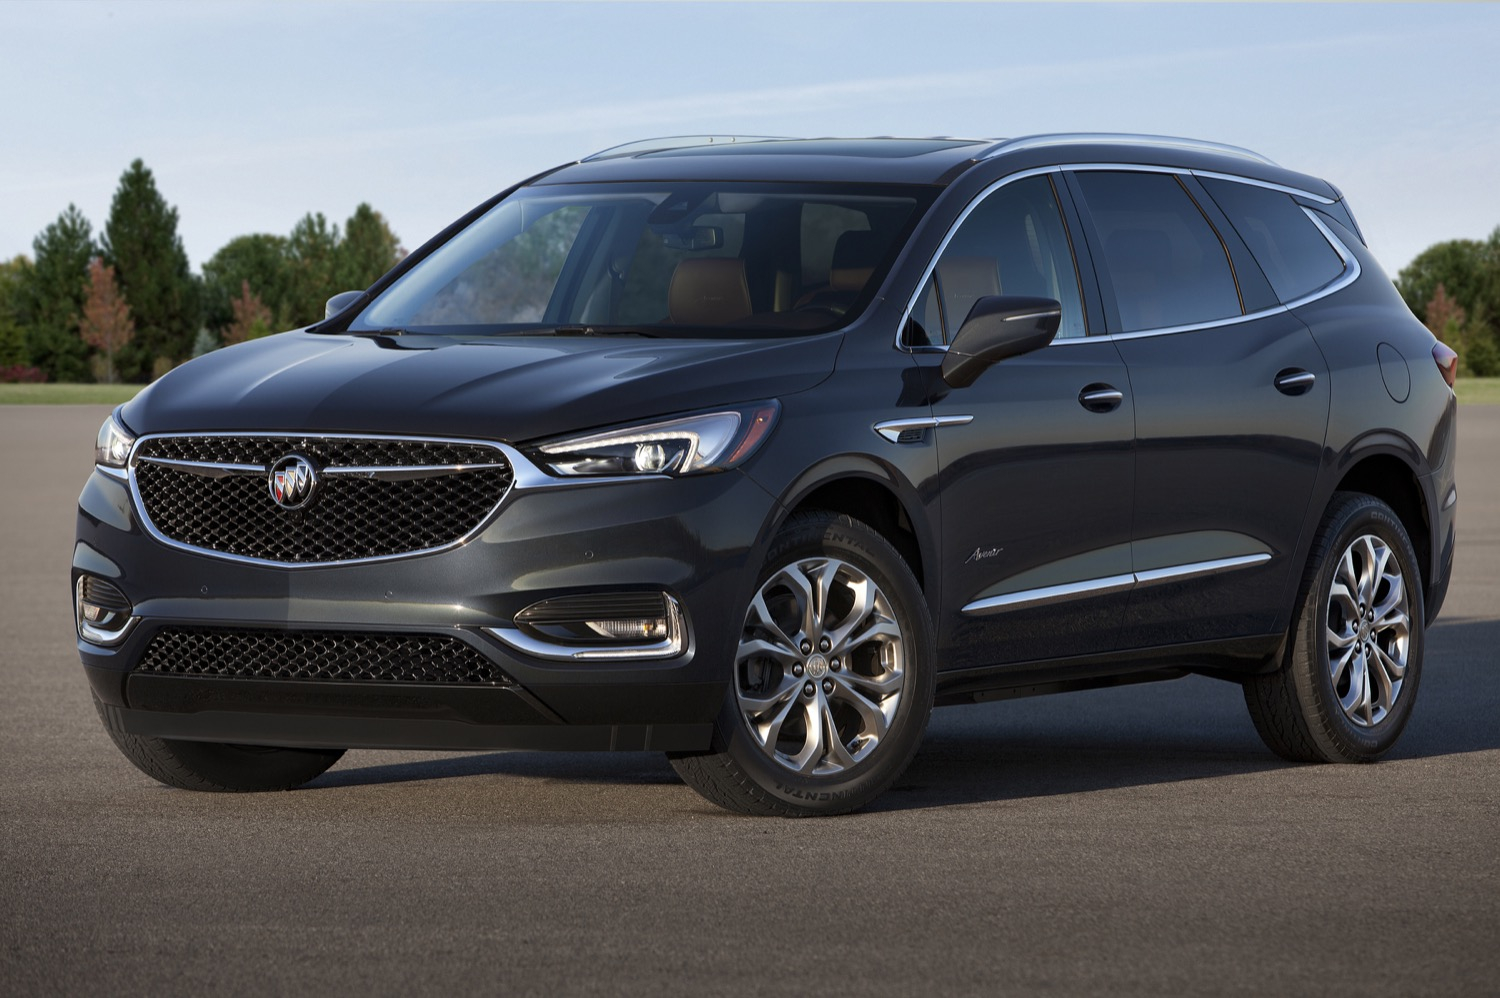 2018 Buick Enclave Info, Pictures, Specs, Wiki | Gm Authority New 2022 Buick Enclave Manual, Maintenance Schedule, Mileage